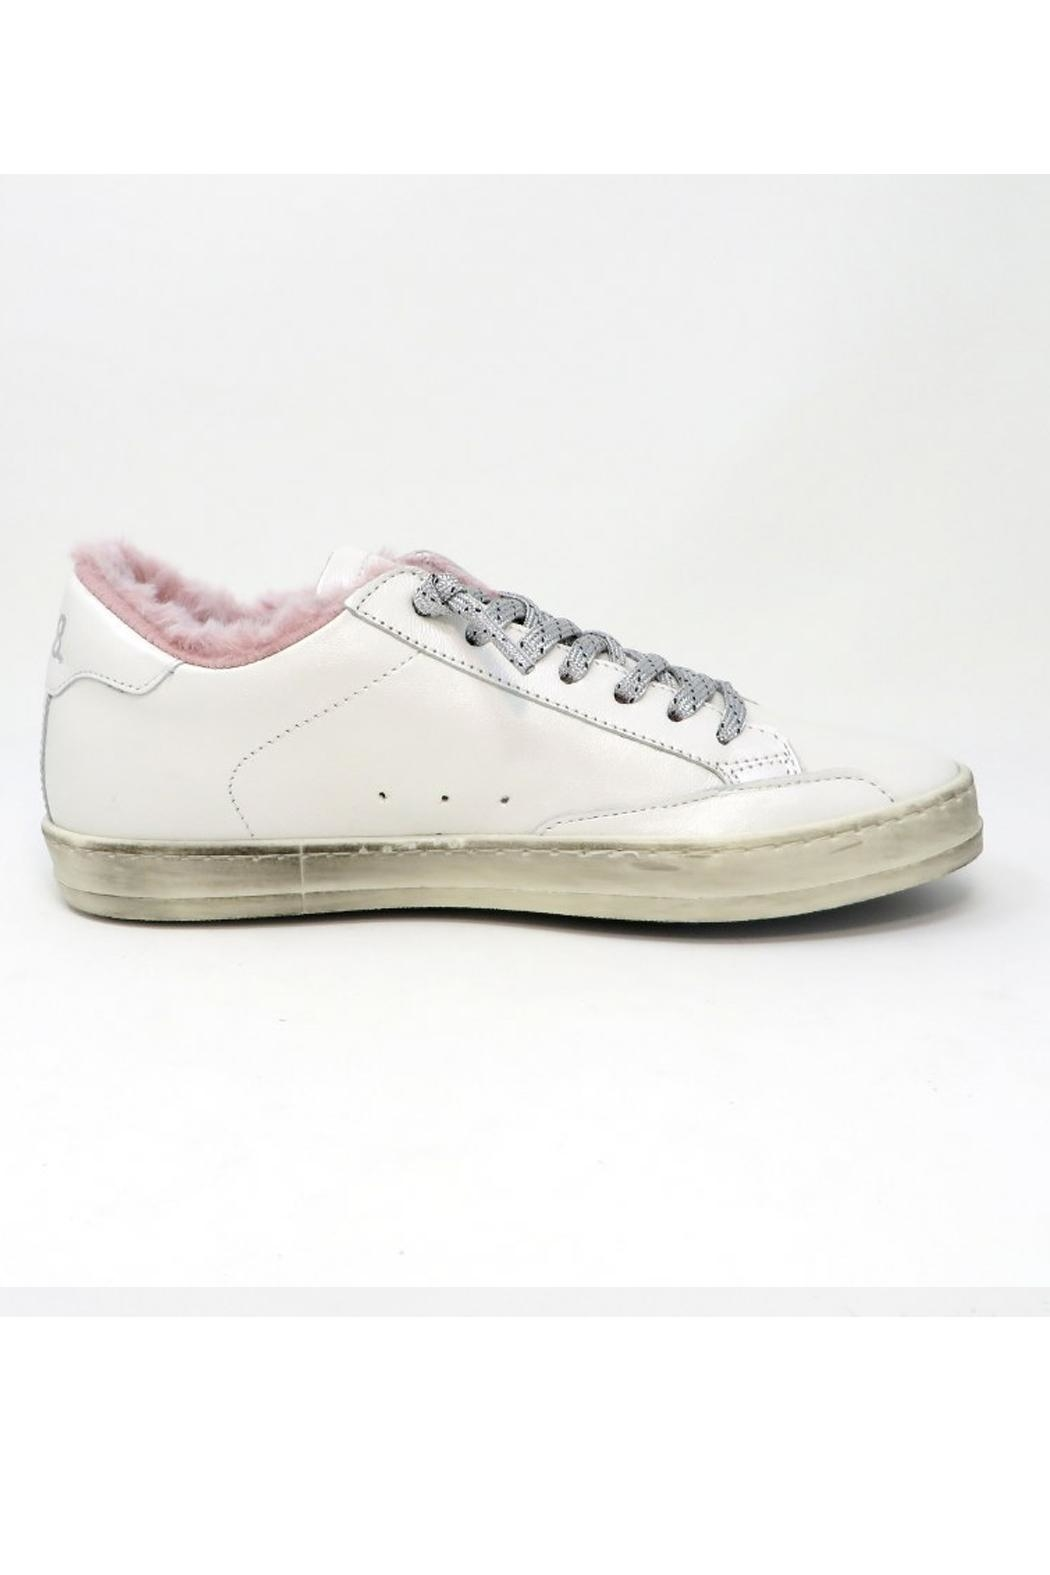 P448 Whitepea Fur Sneakers - Front Full Image